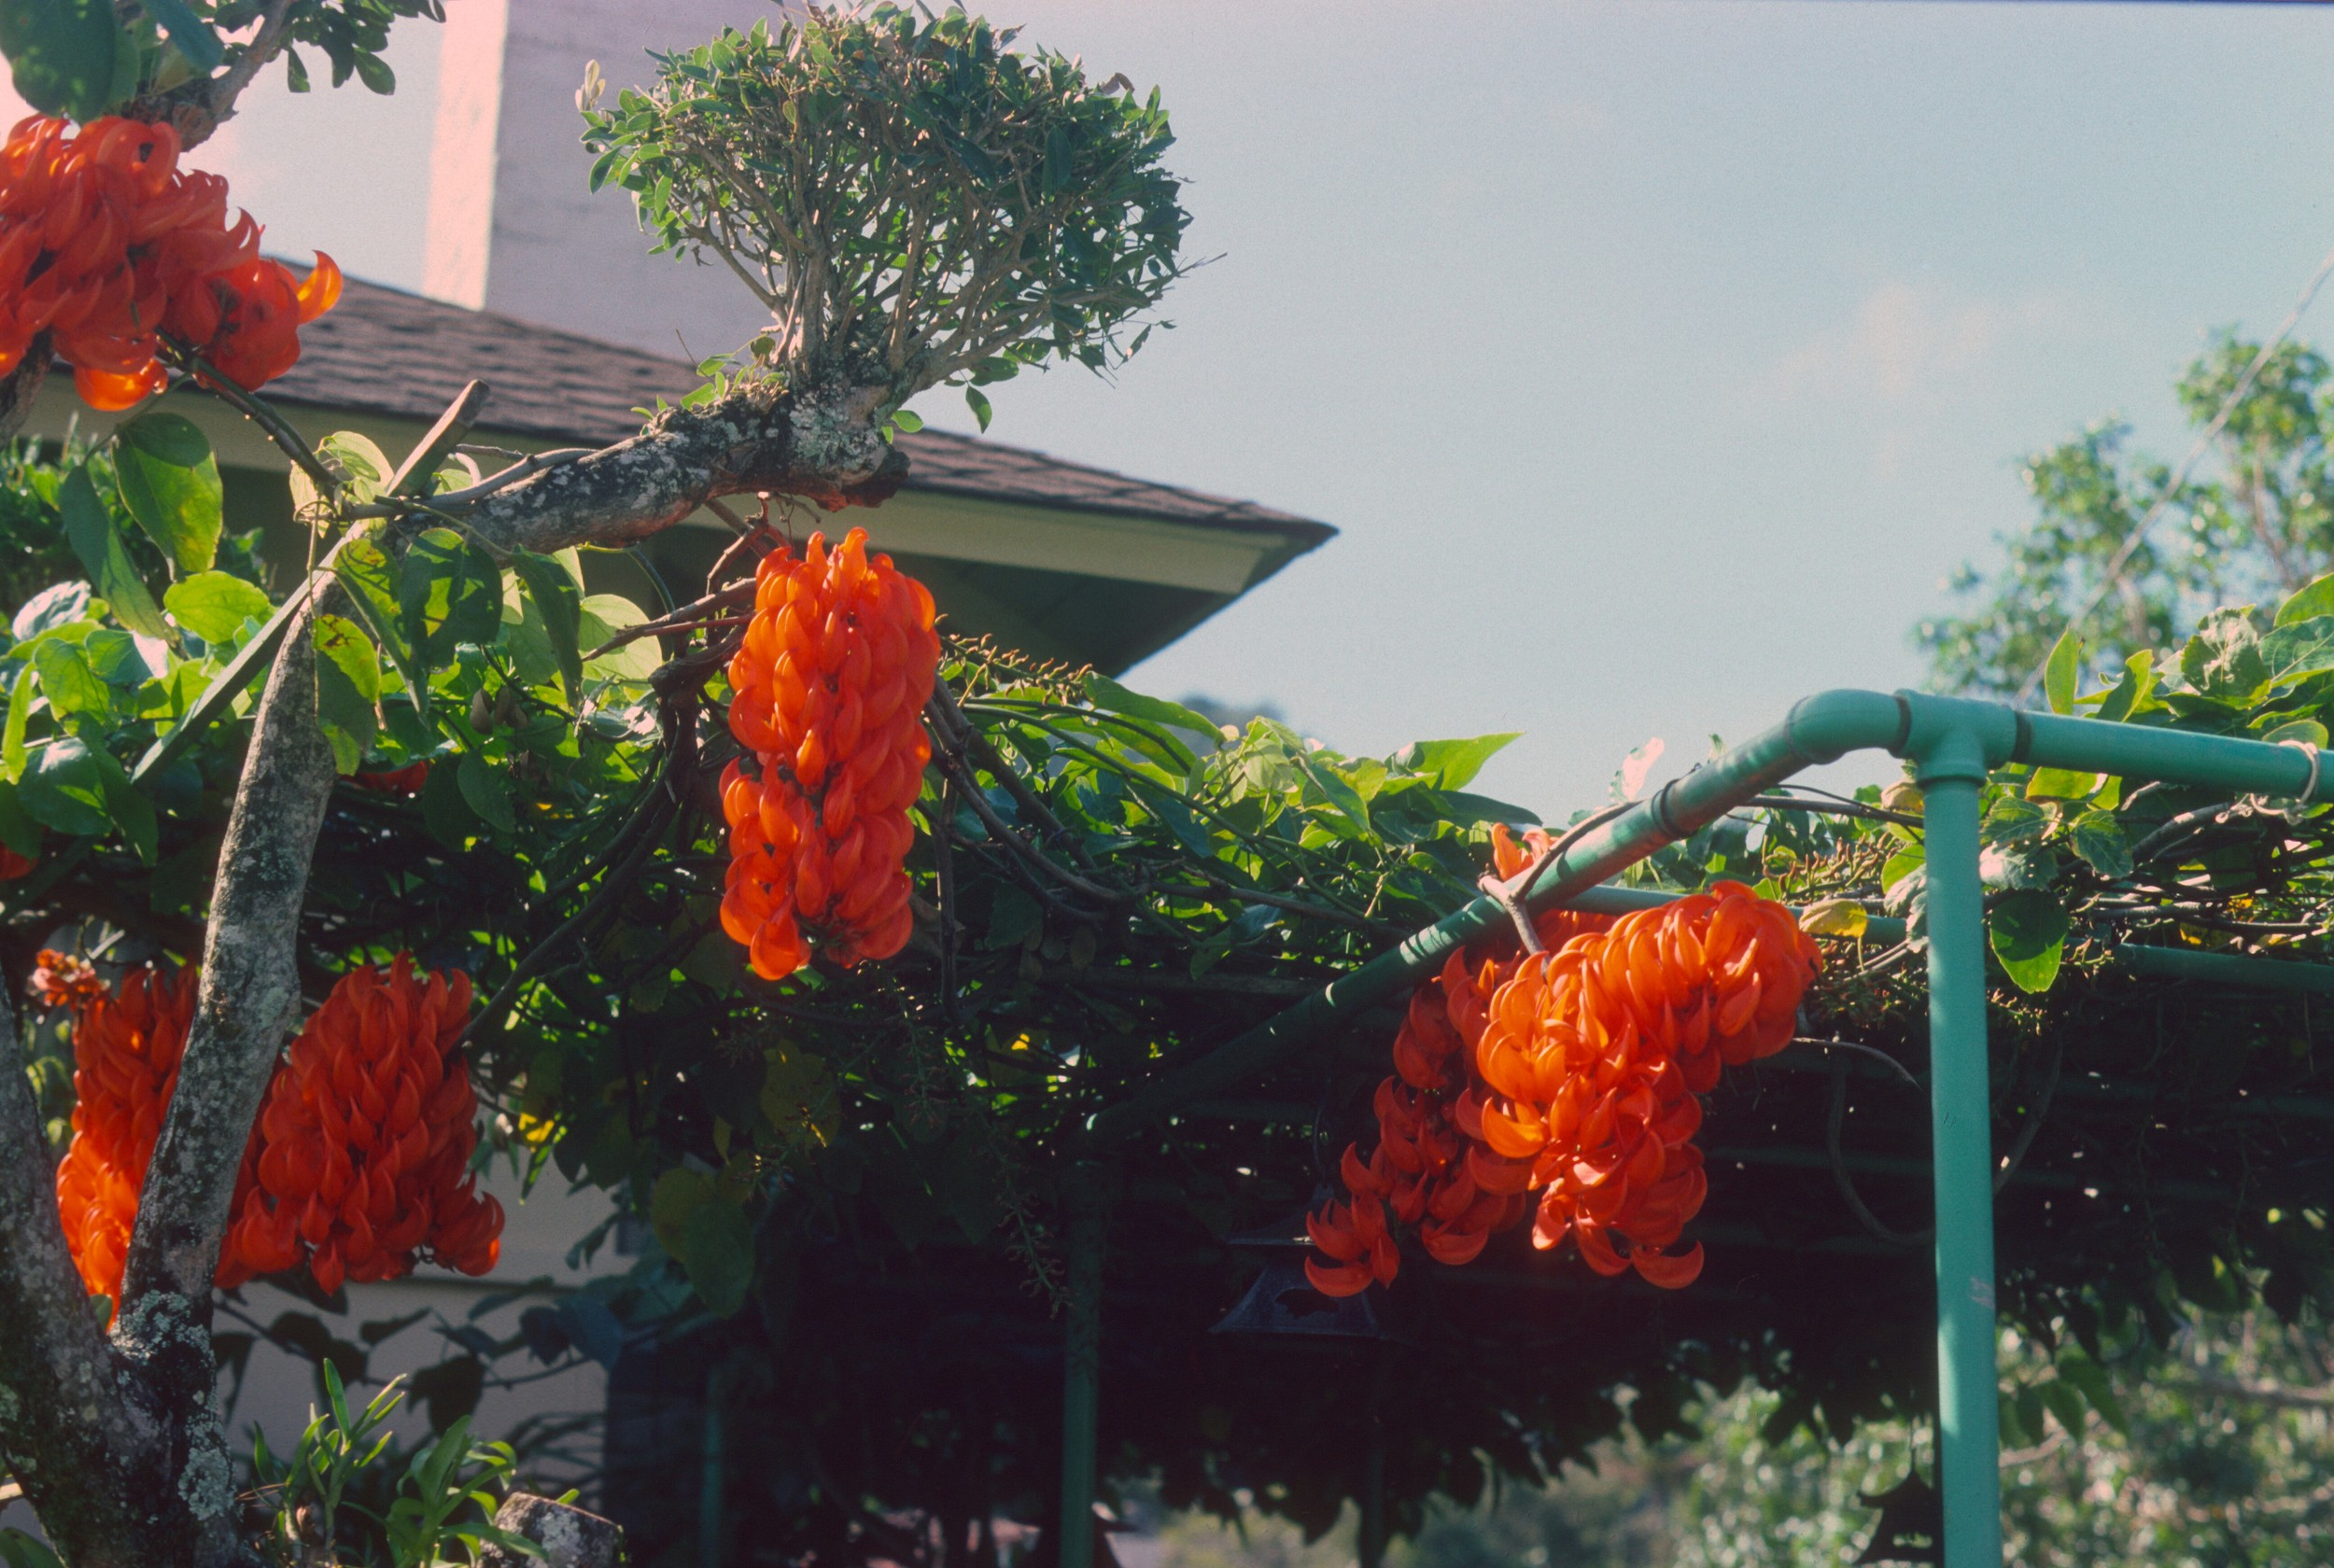 Mucuna bennettii, a tropical vine, growing over shrubs and an arbor in Hawai'i.